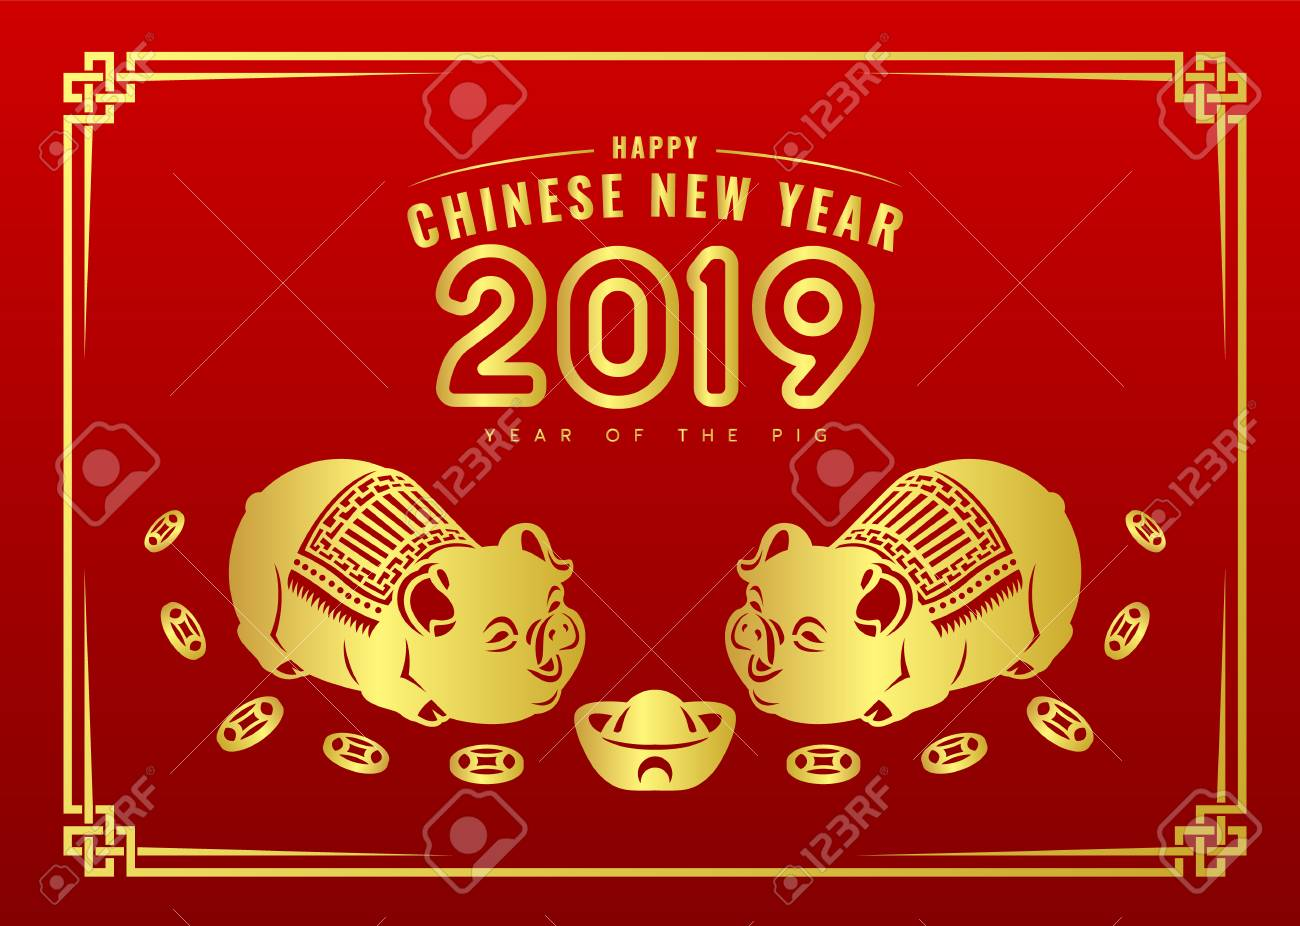 Happy Chinese New Year 2019 Banner Card With Gold Twin Pig Zodiac